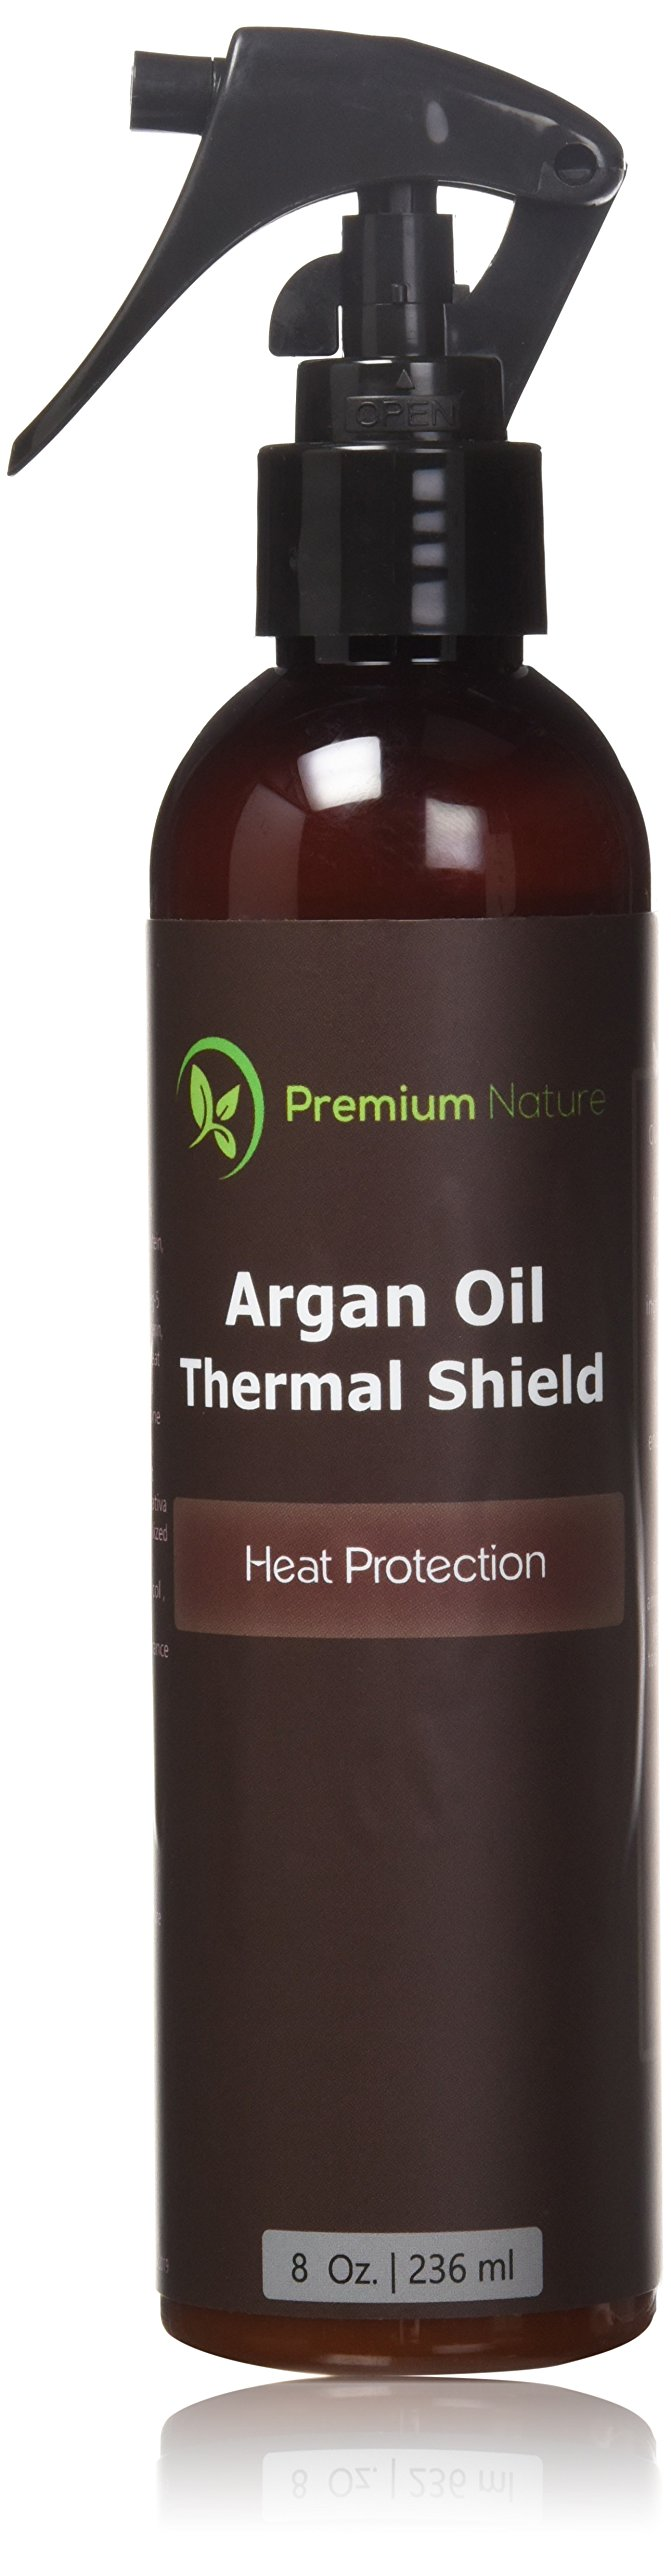 Argan Oil Hair Protector Spray - 8 oz Thermal Heat Protectant Against Flat Iron - Sulfate Free 100% Organic & Natural Prevents Damage Dryness Breakage & Split Ends Premium Nature